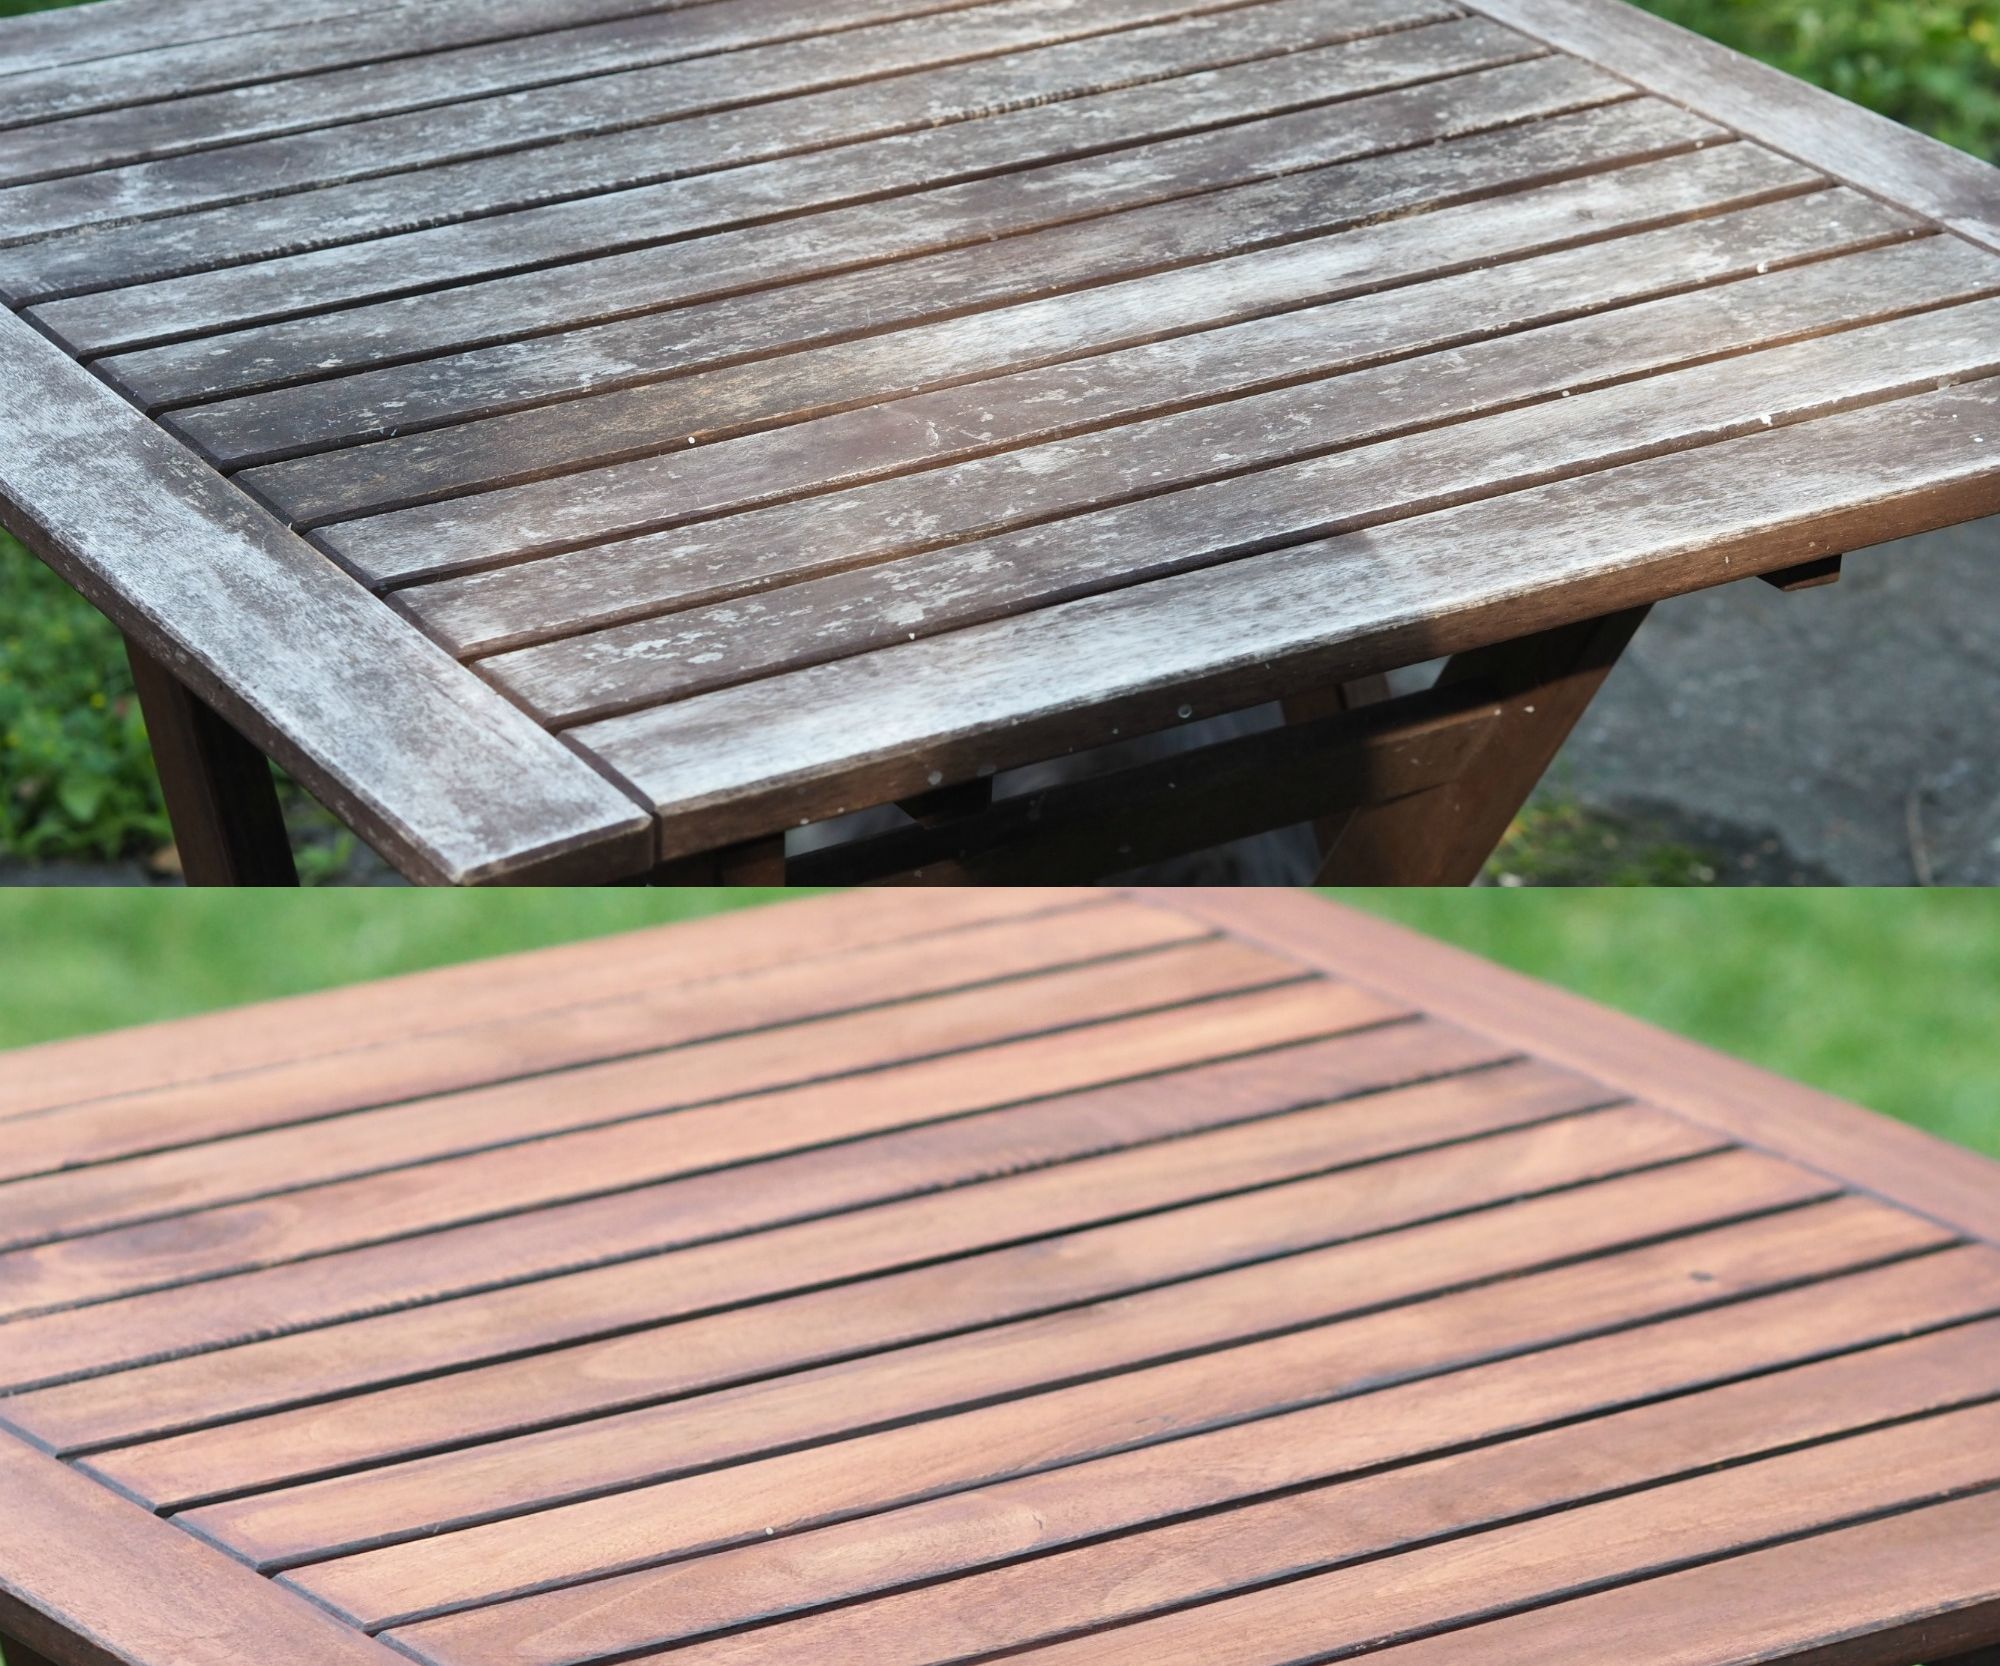 Refinishing Ikea Outdoor Furniture 3 Steps With Pictures Instructables